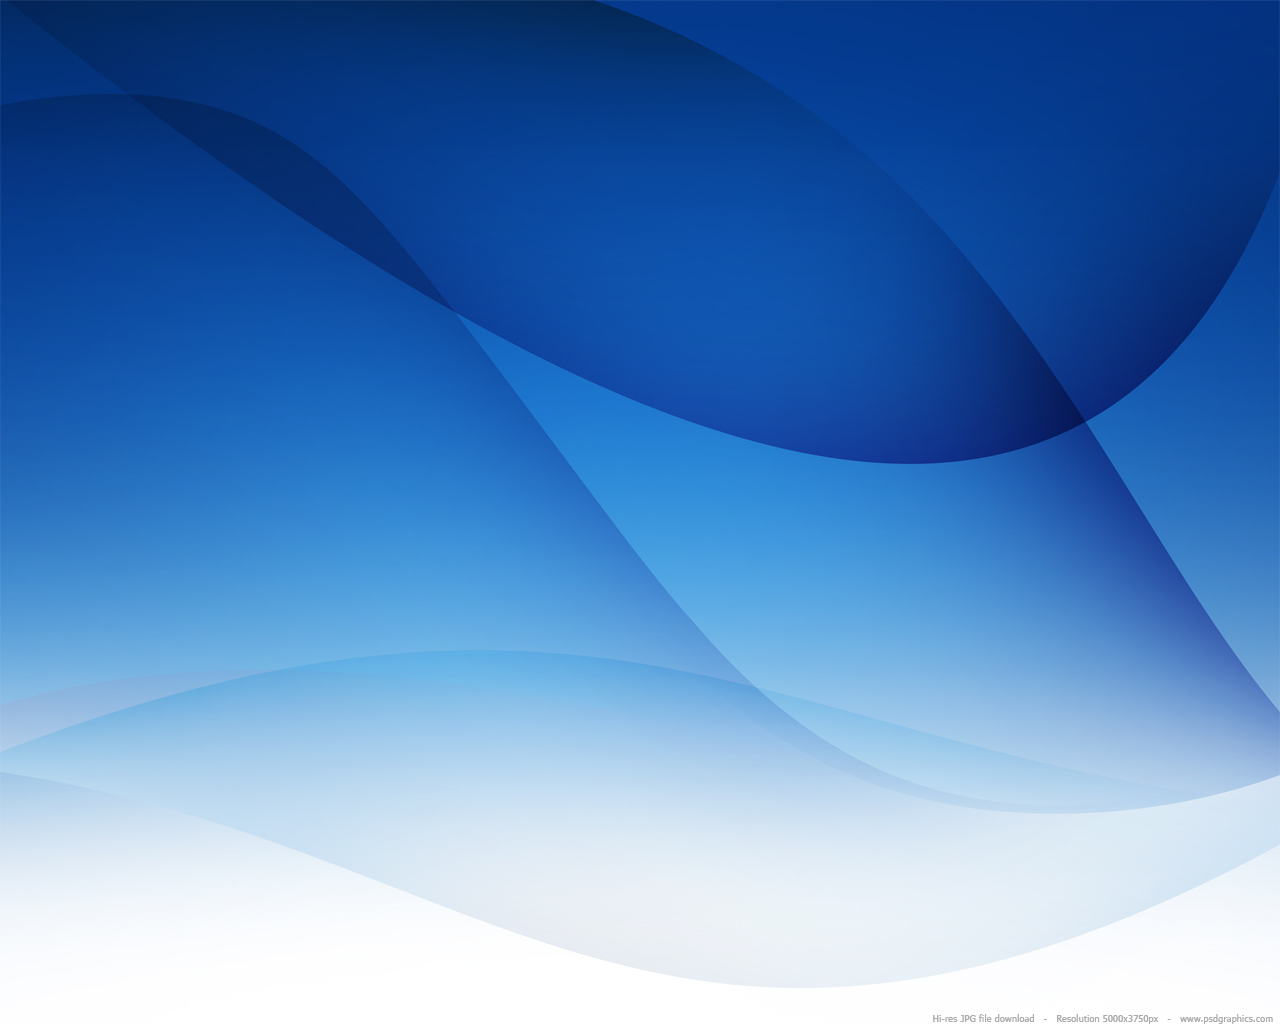 Medium size preview (1280x1024px): Blue business background